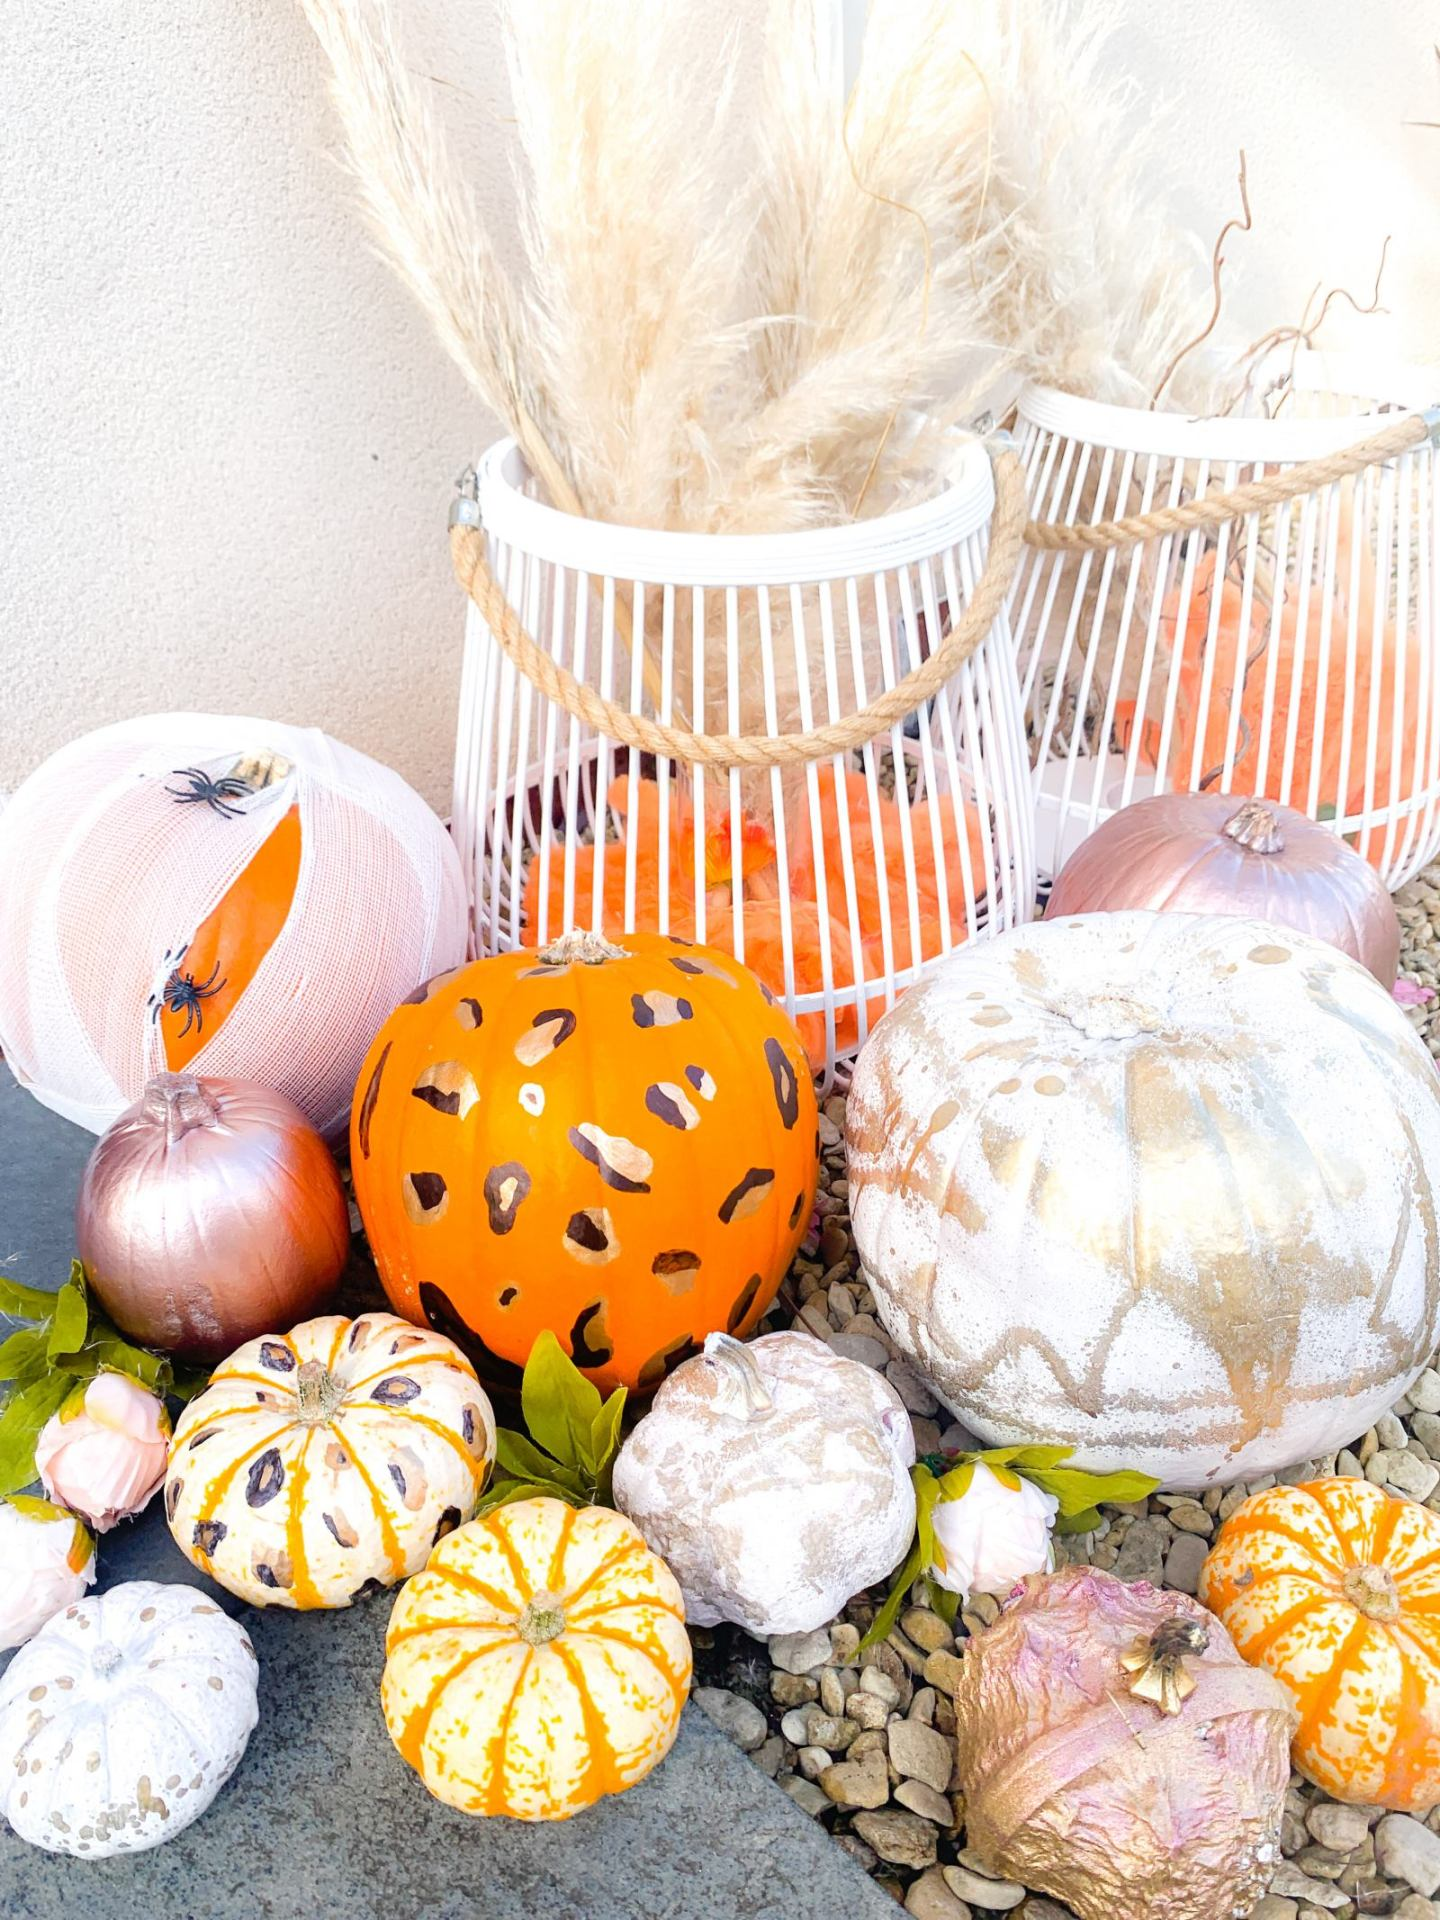 5 EASY CARVE FREE HALLOWEEN PUMPKIN IDEAS